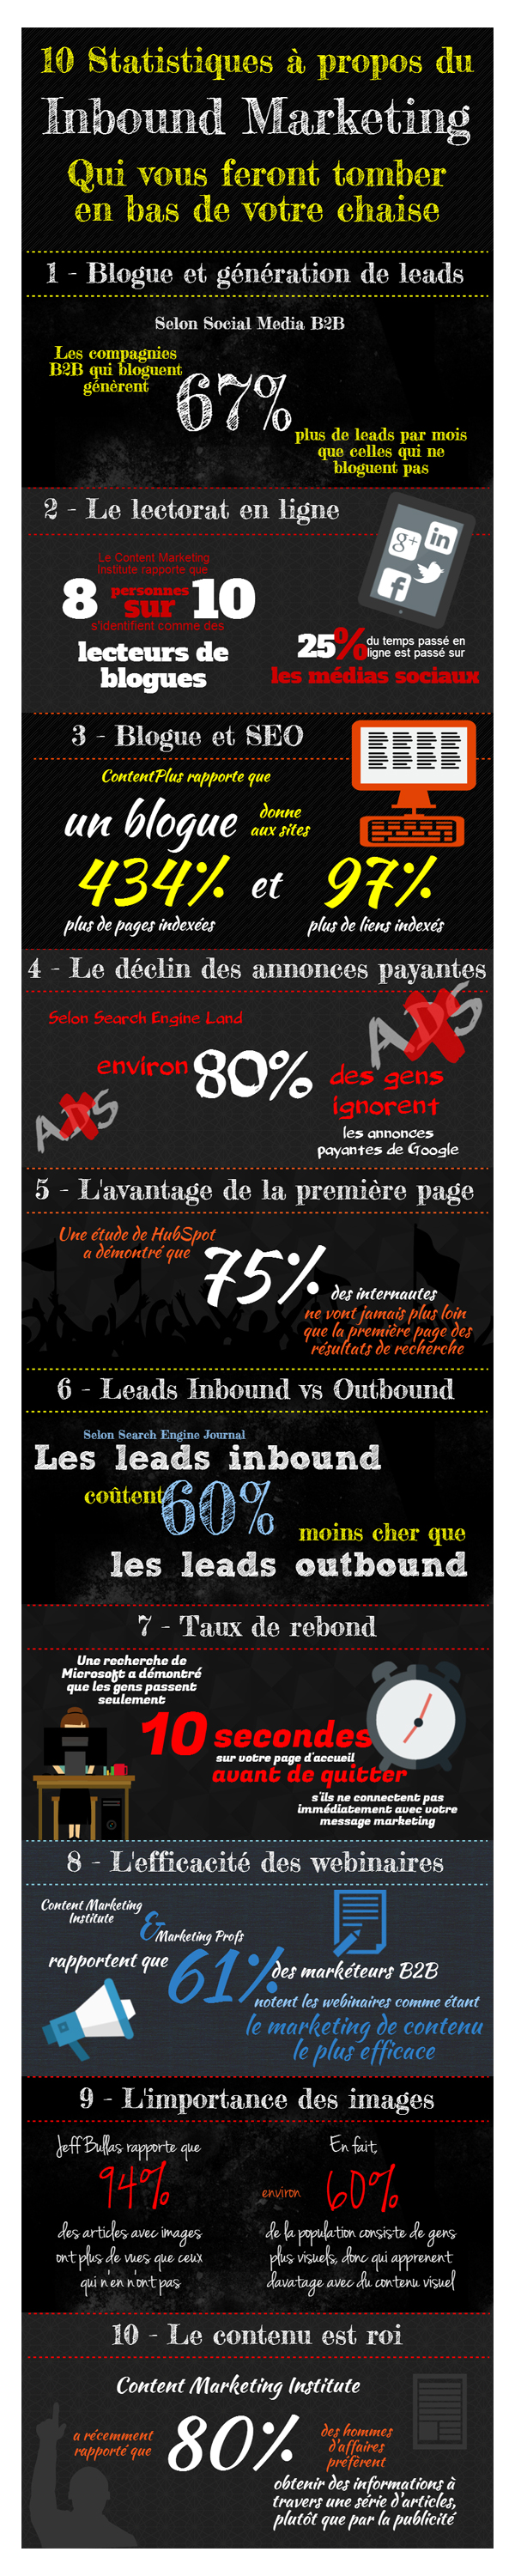 Infographie 10 stats Inbound Marketing